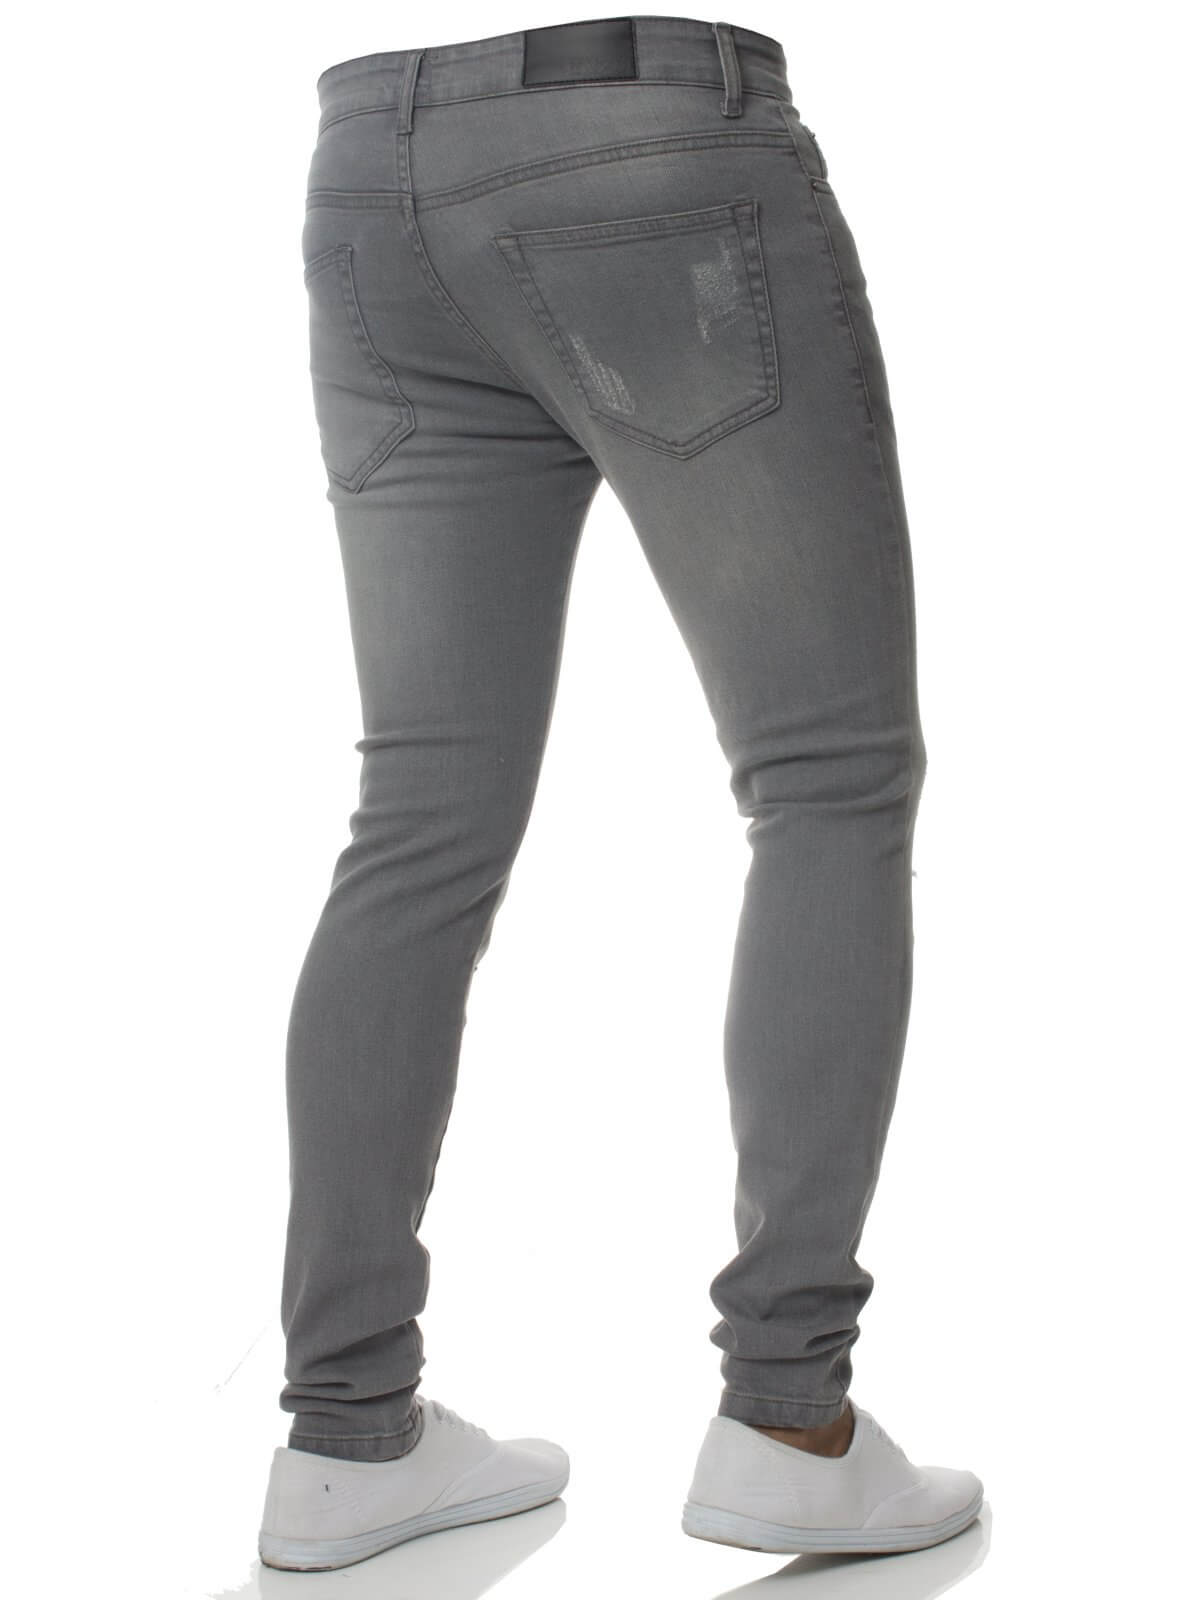 Mens Denim Ripped Denim Jeans Grey | Enzo Designer Menswear